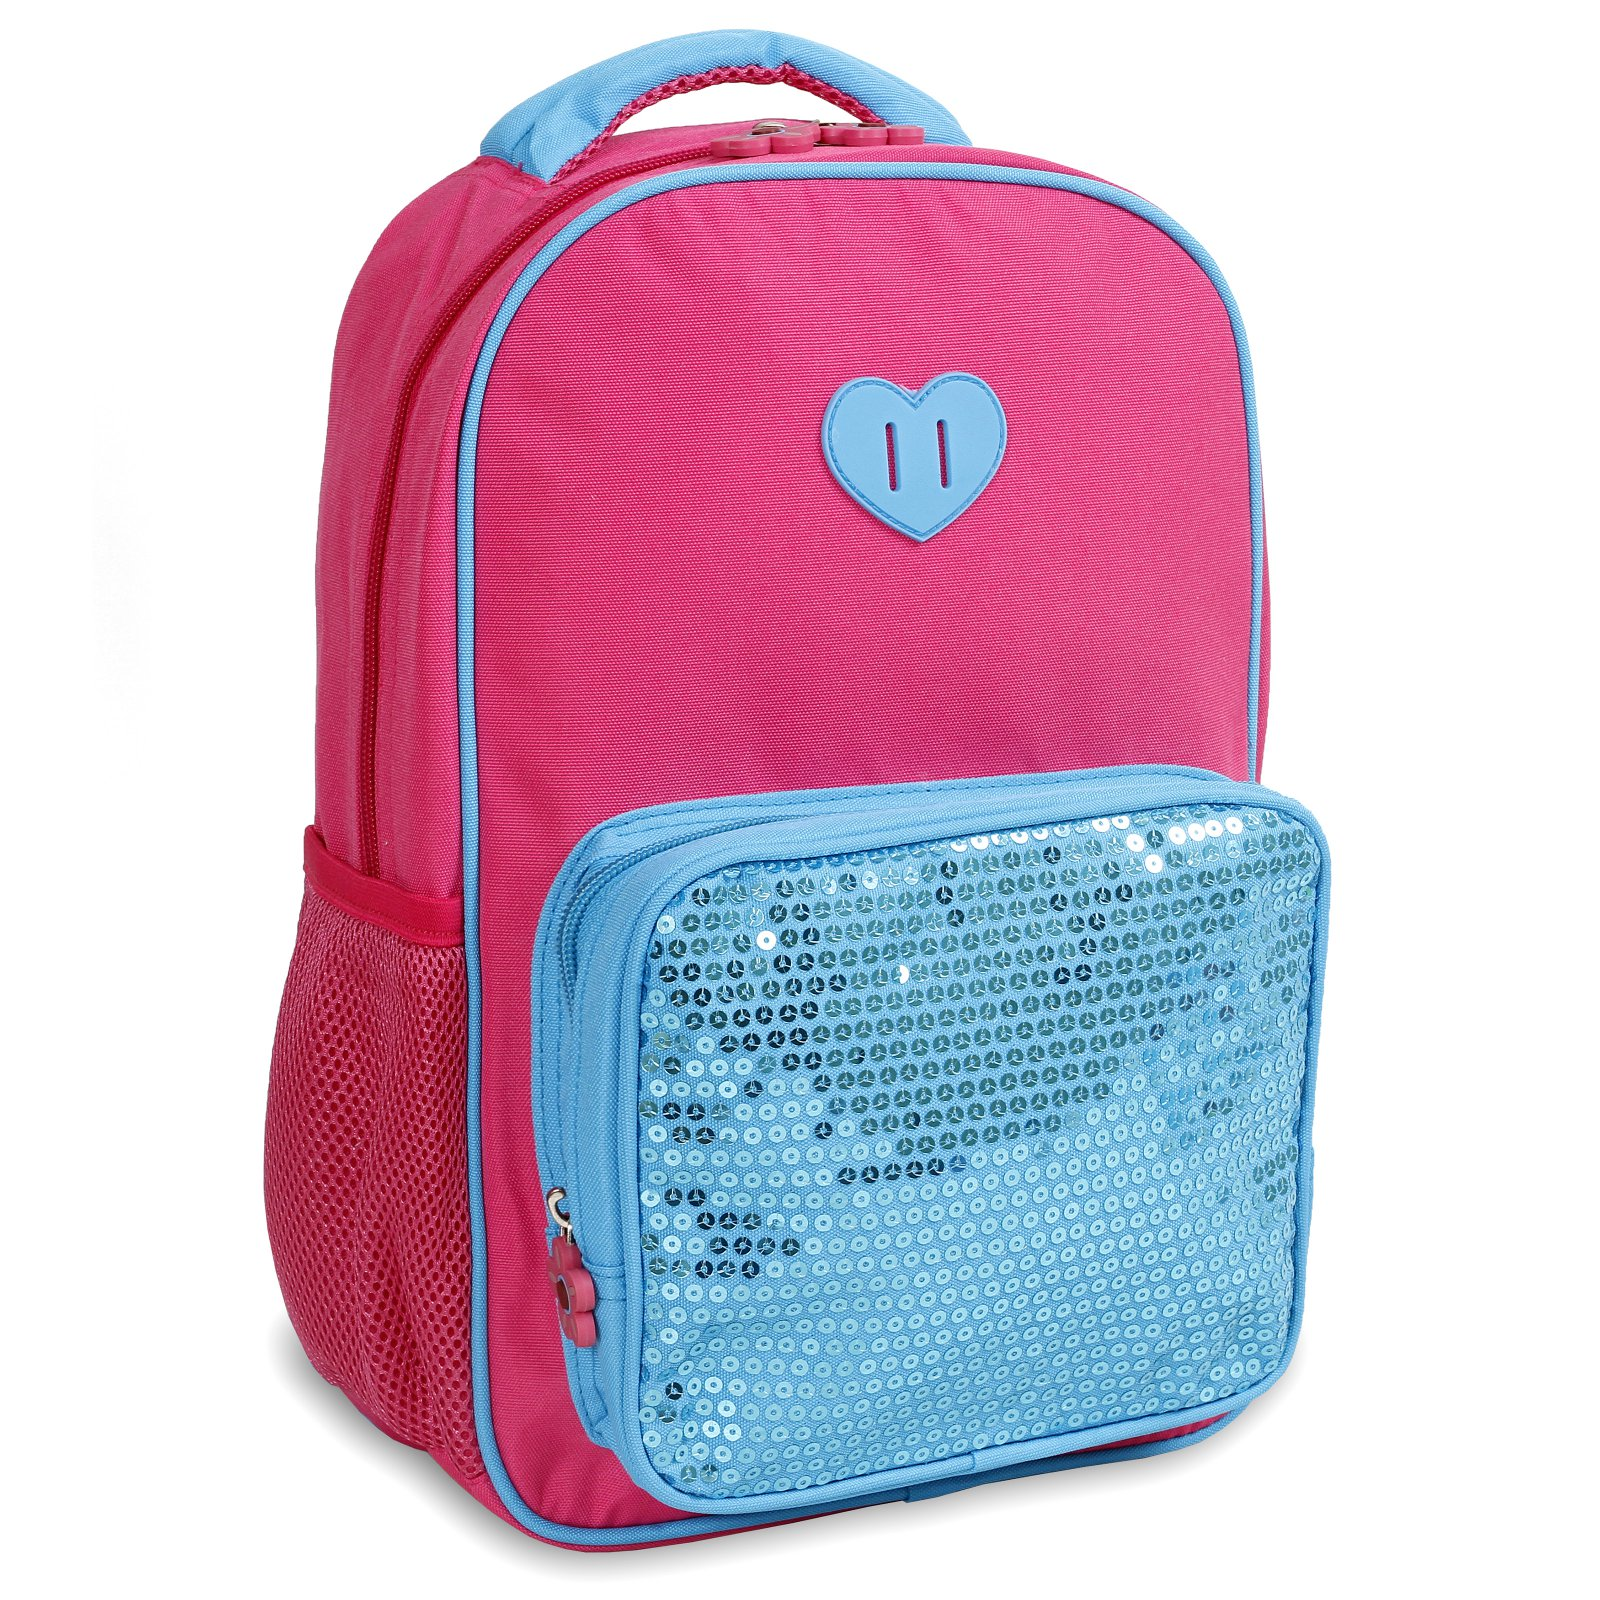 J World Sprinkle Kids Backpack